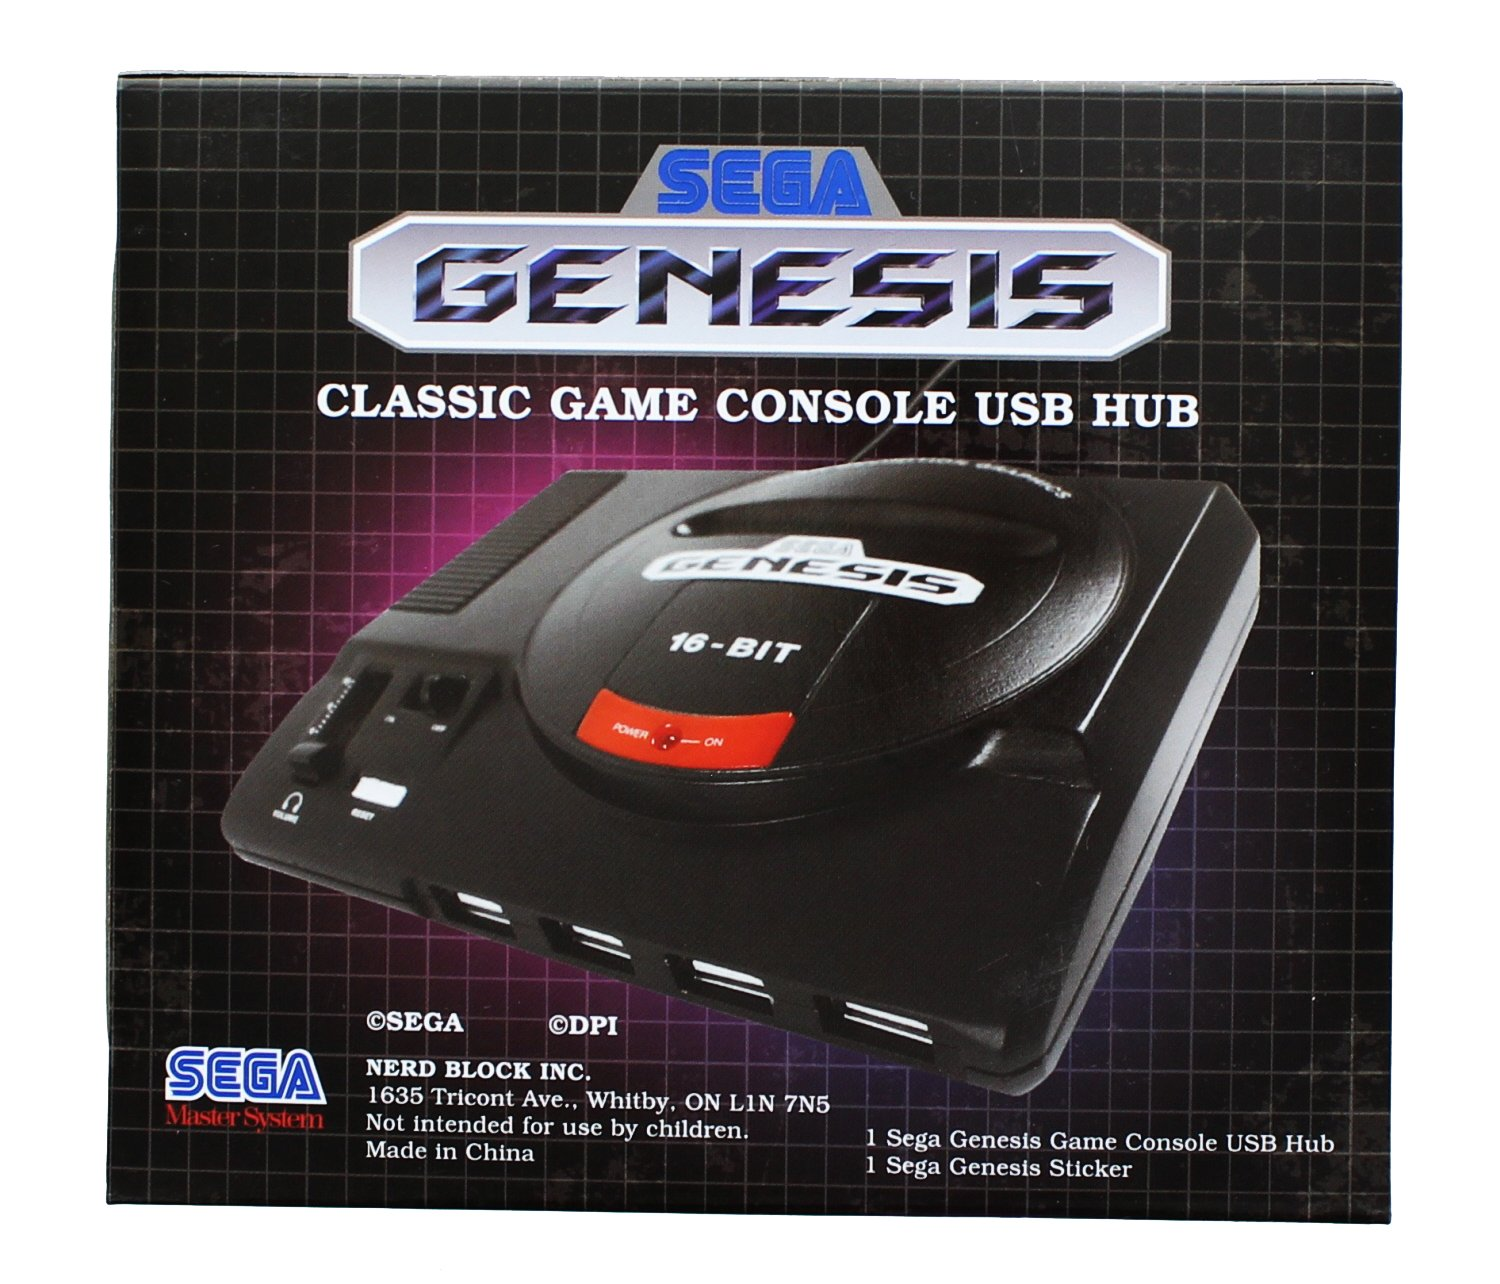 Sega Genesis 16-Bit Mini Classic Game Console USB Hub: Amazon.de ...